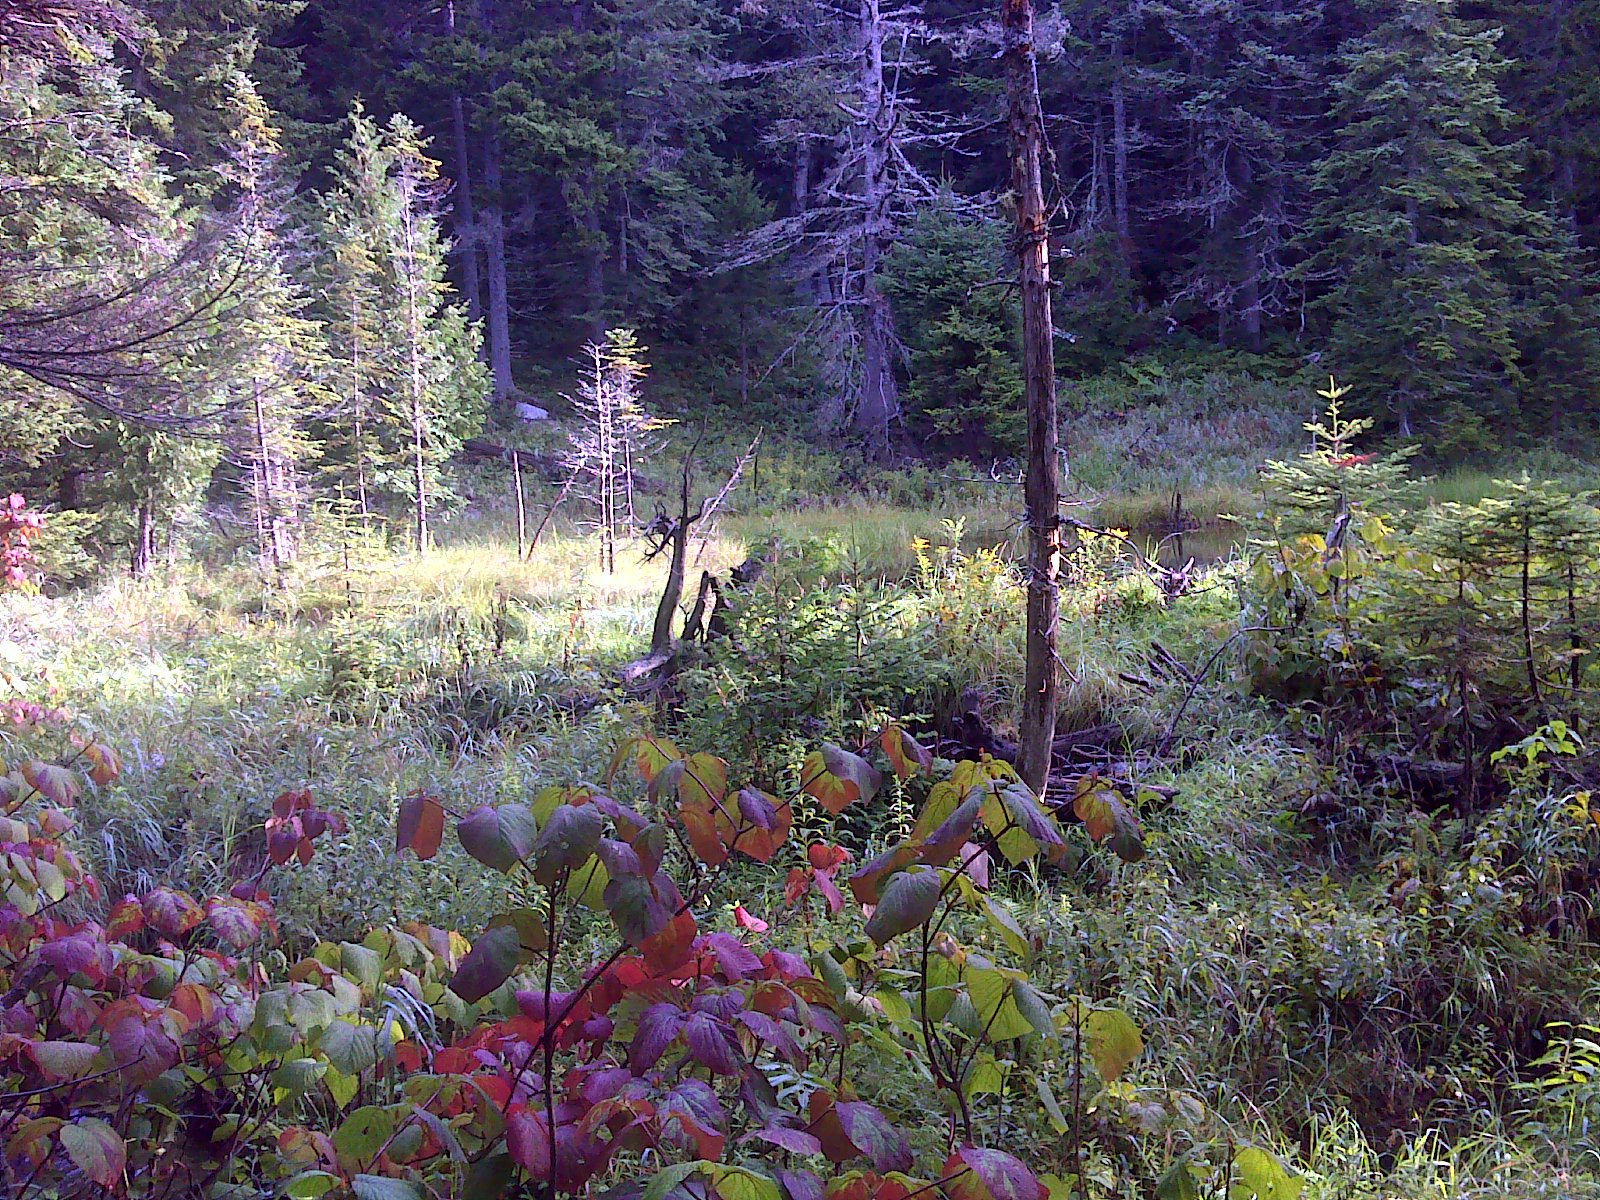 Touch of fall color at a small beaver pond wetland area